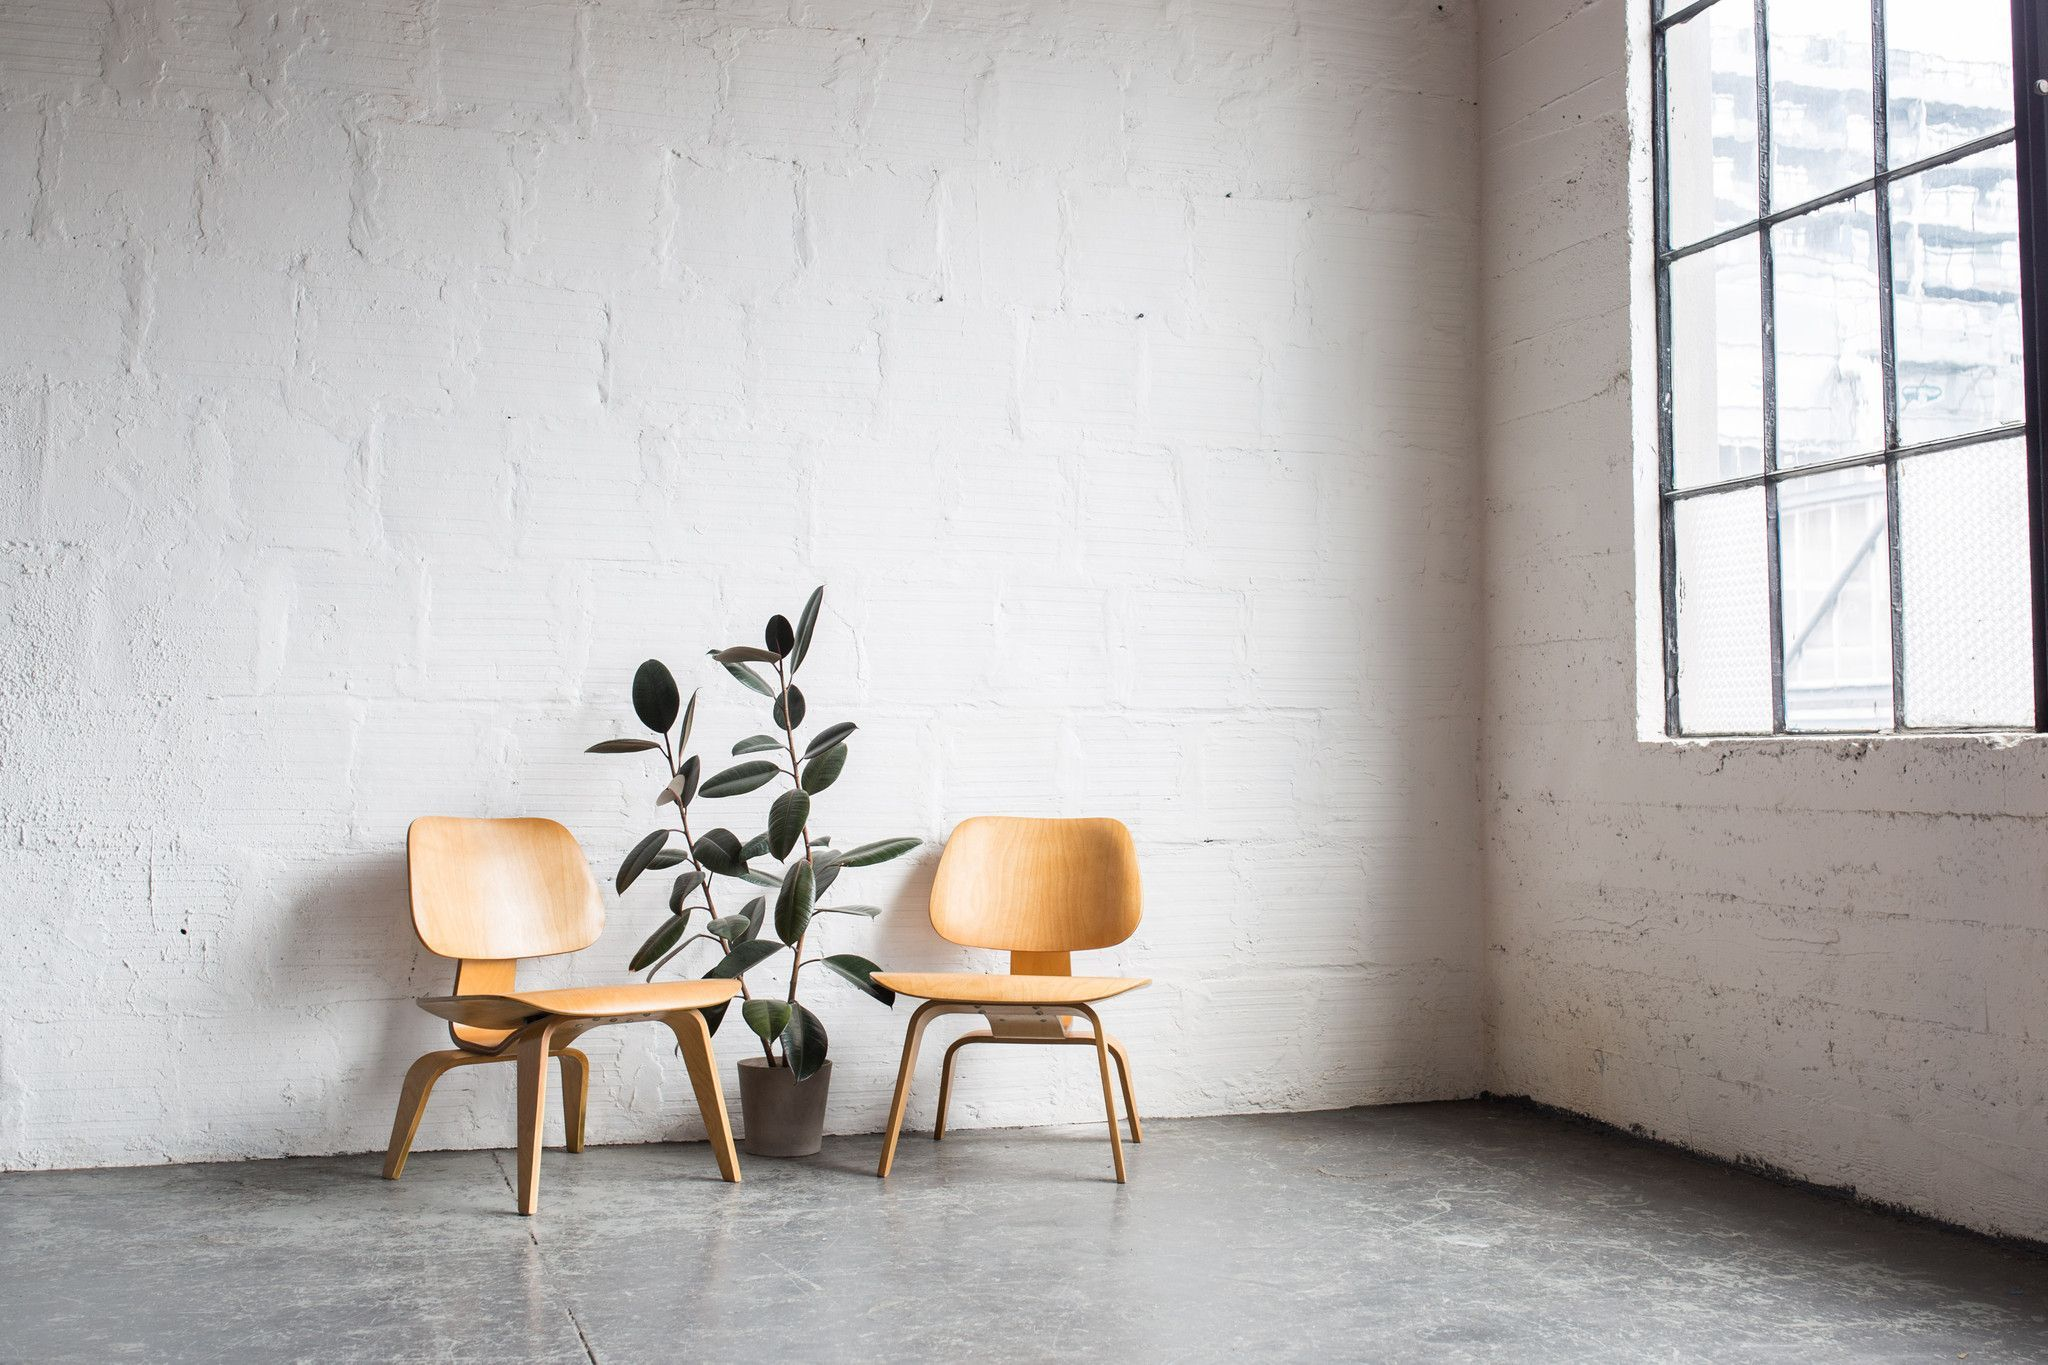 Design Charles and Ray Eames, 1946 Plywood Made in United